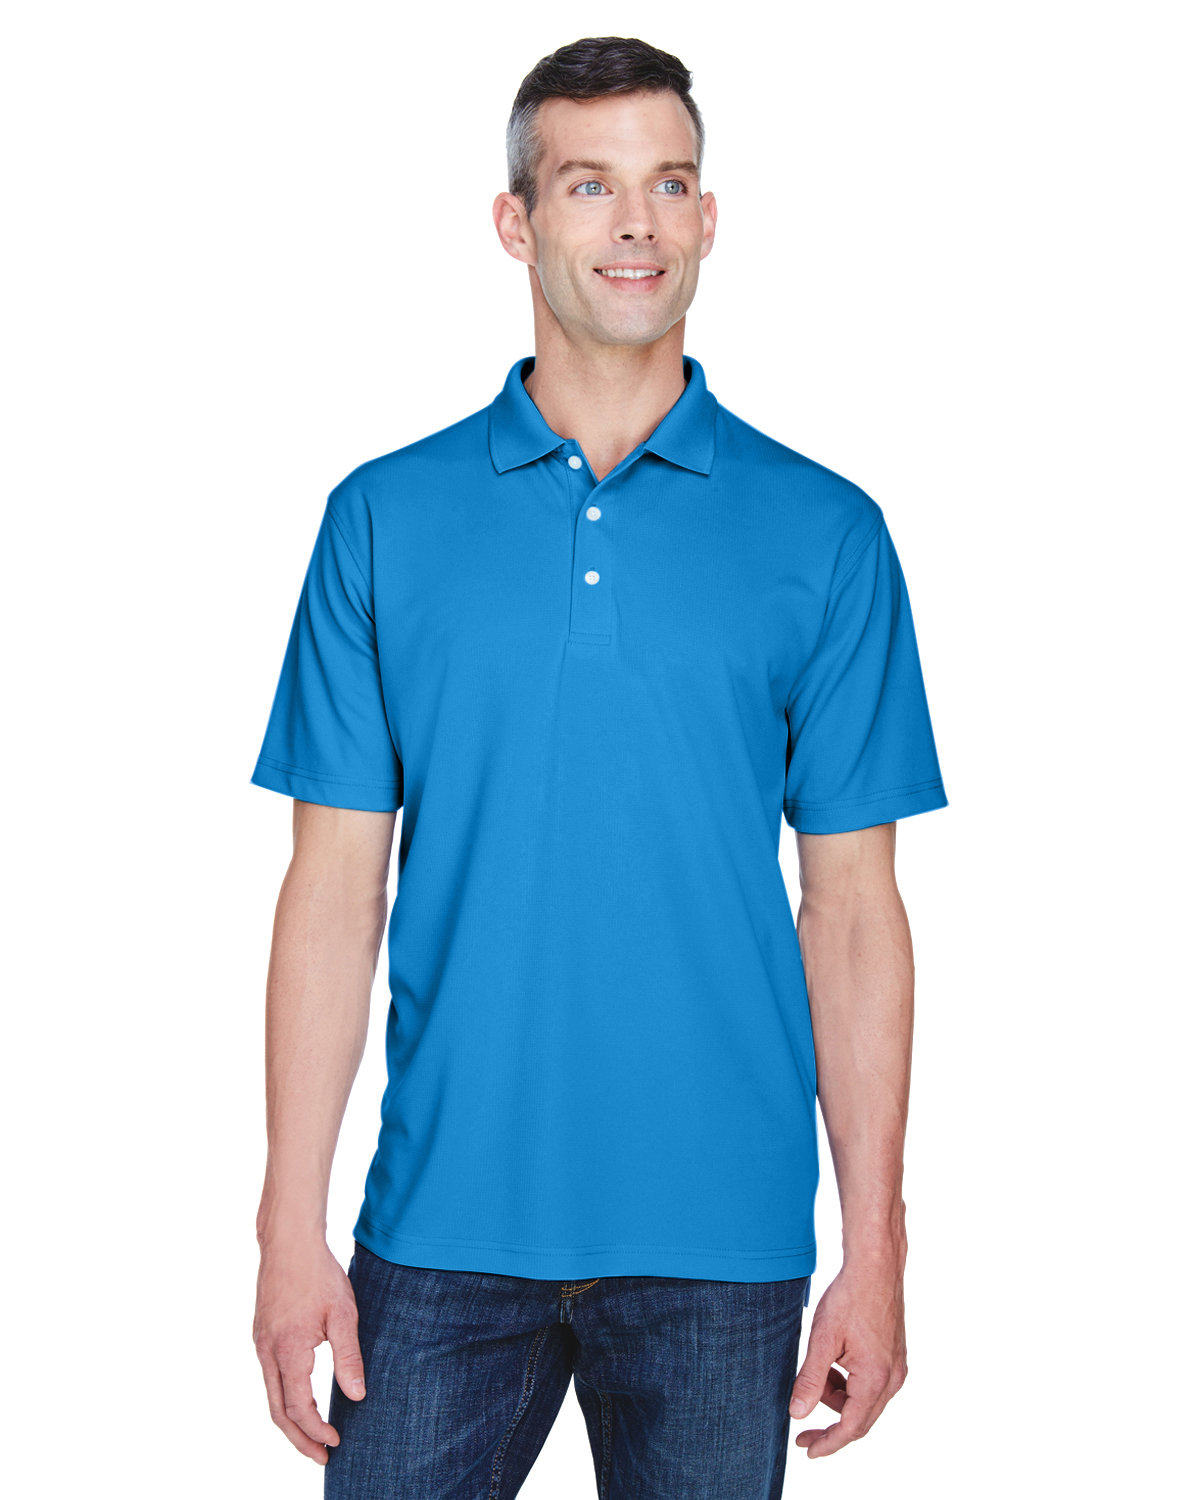 UltraClub Men's Cool & Dry Stain-Release Performance Polo PACIFIC BLUE